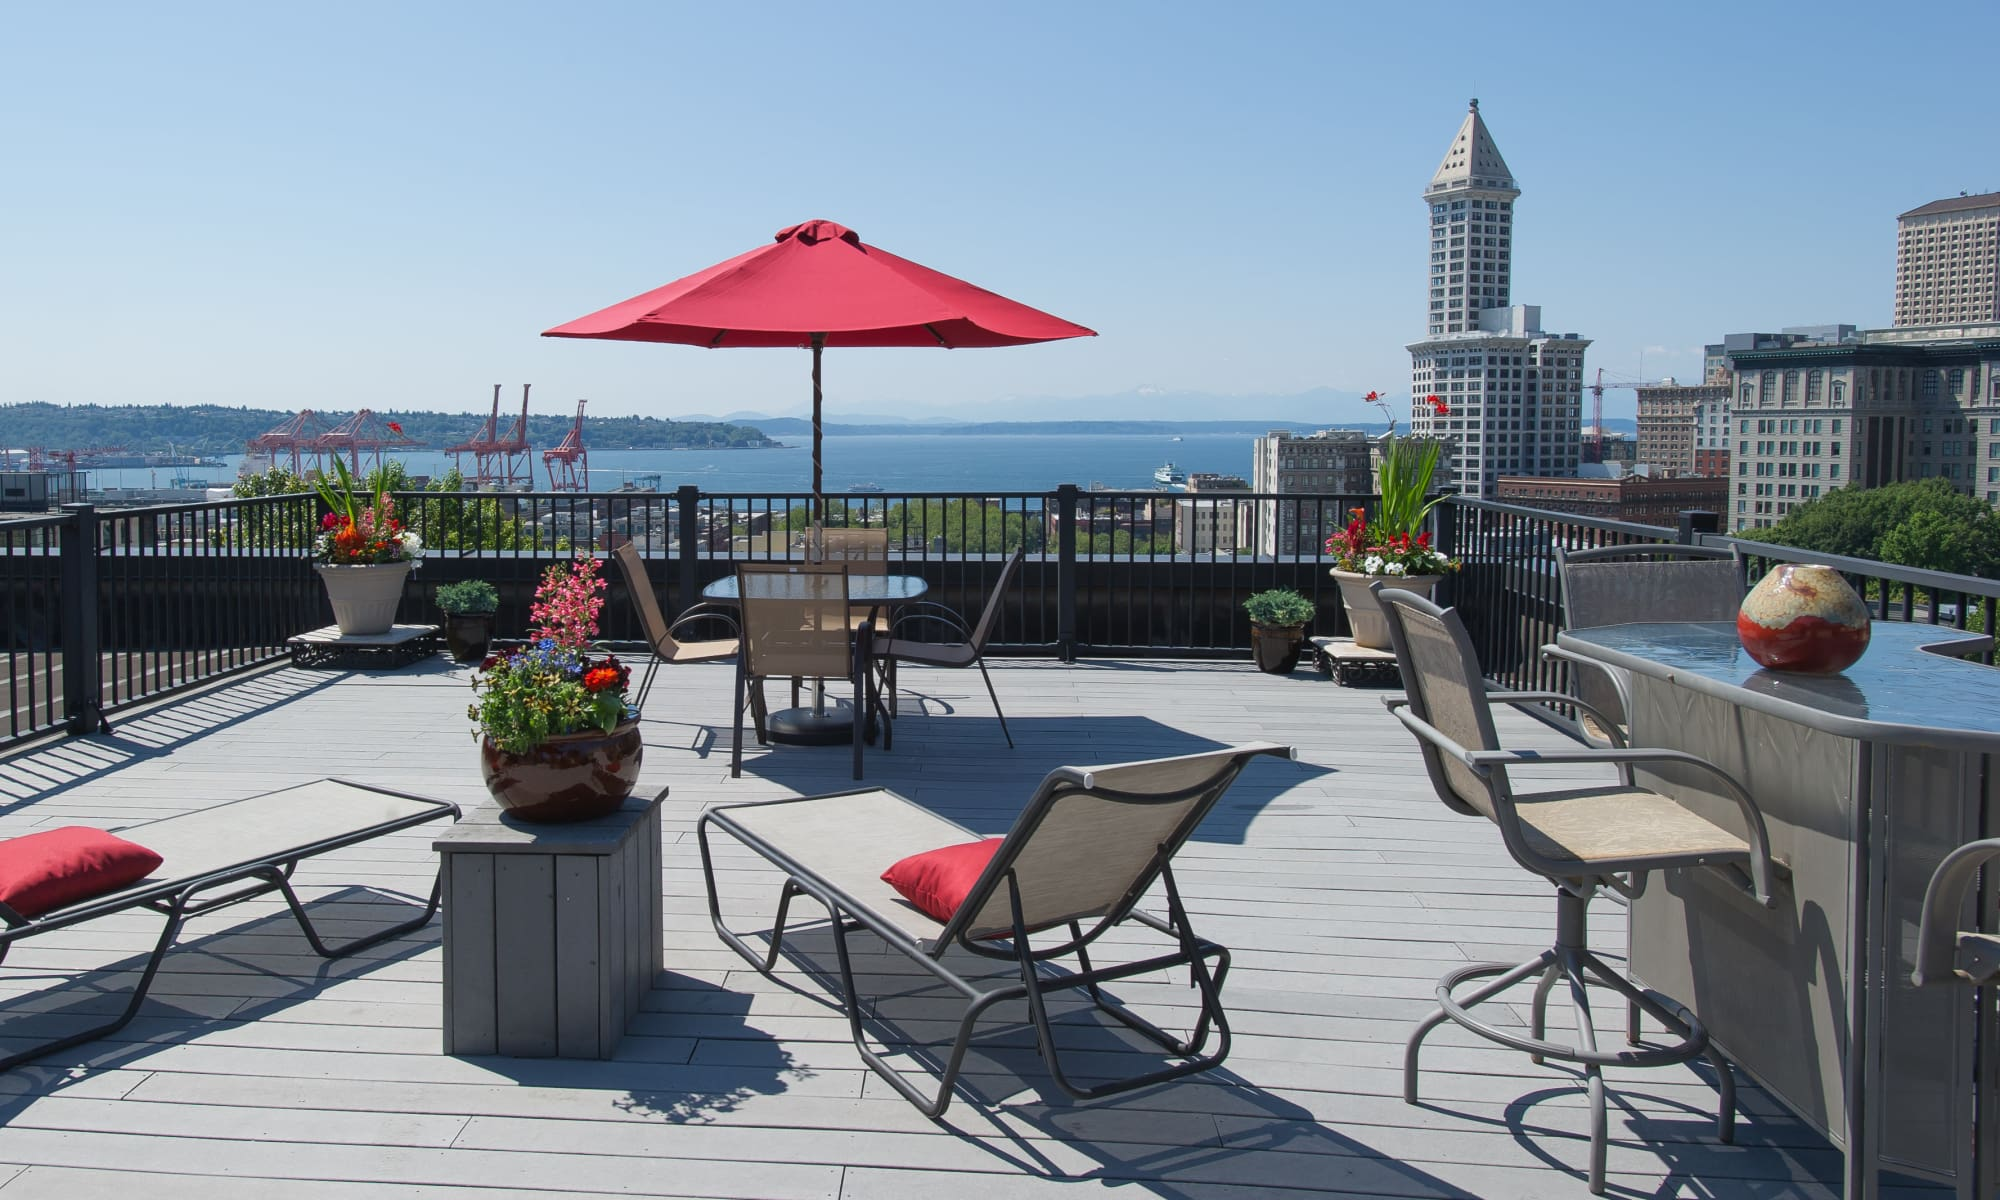 Contact us for more information at Metropolitan Park Apartments in Seattle, Washington